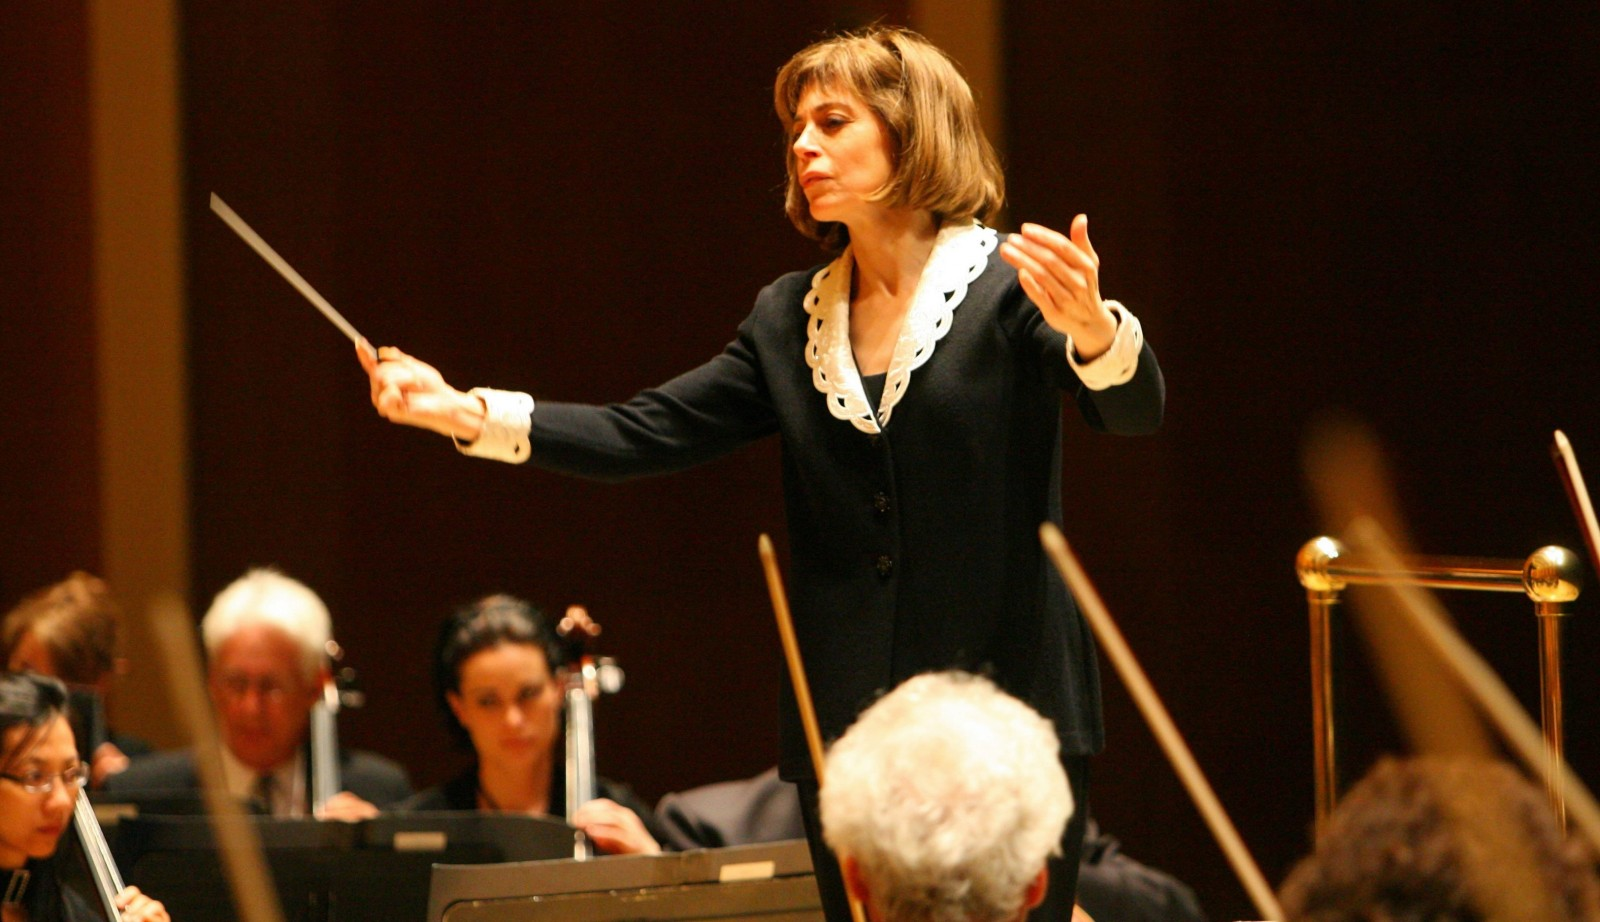 JoAnn Falletta, who has been music director of the Buffalo Philharmonic Orchestra since 1999, is already the longest-tenured holder of that position.